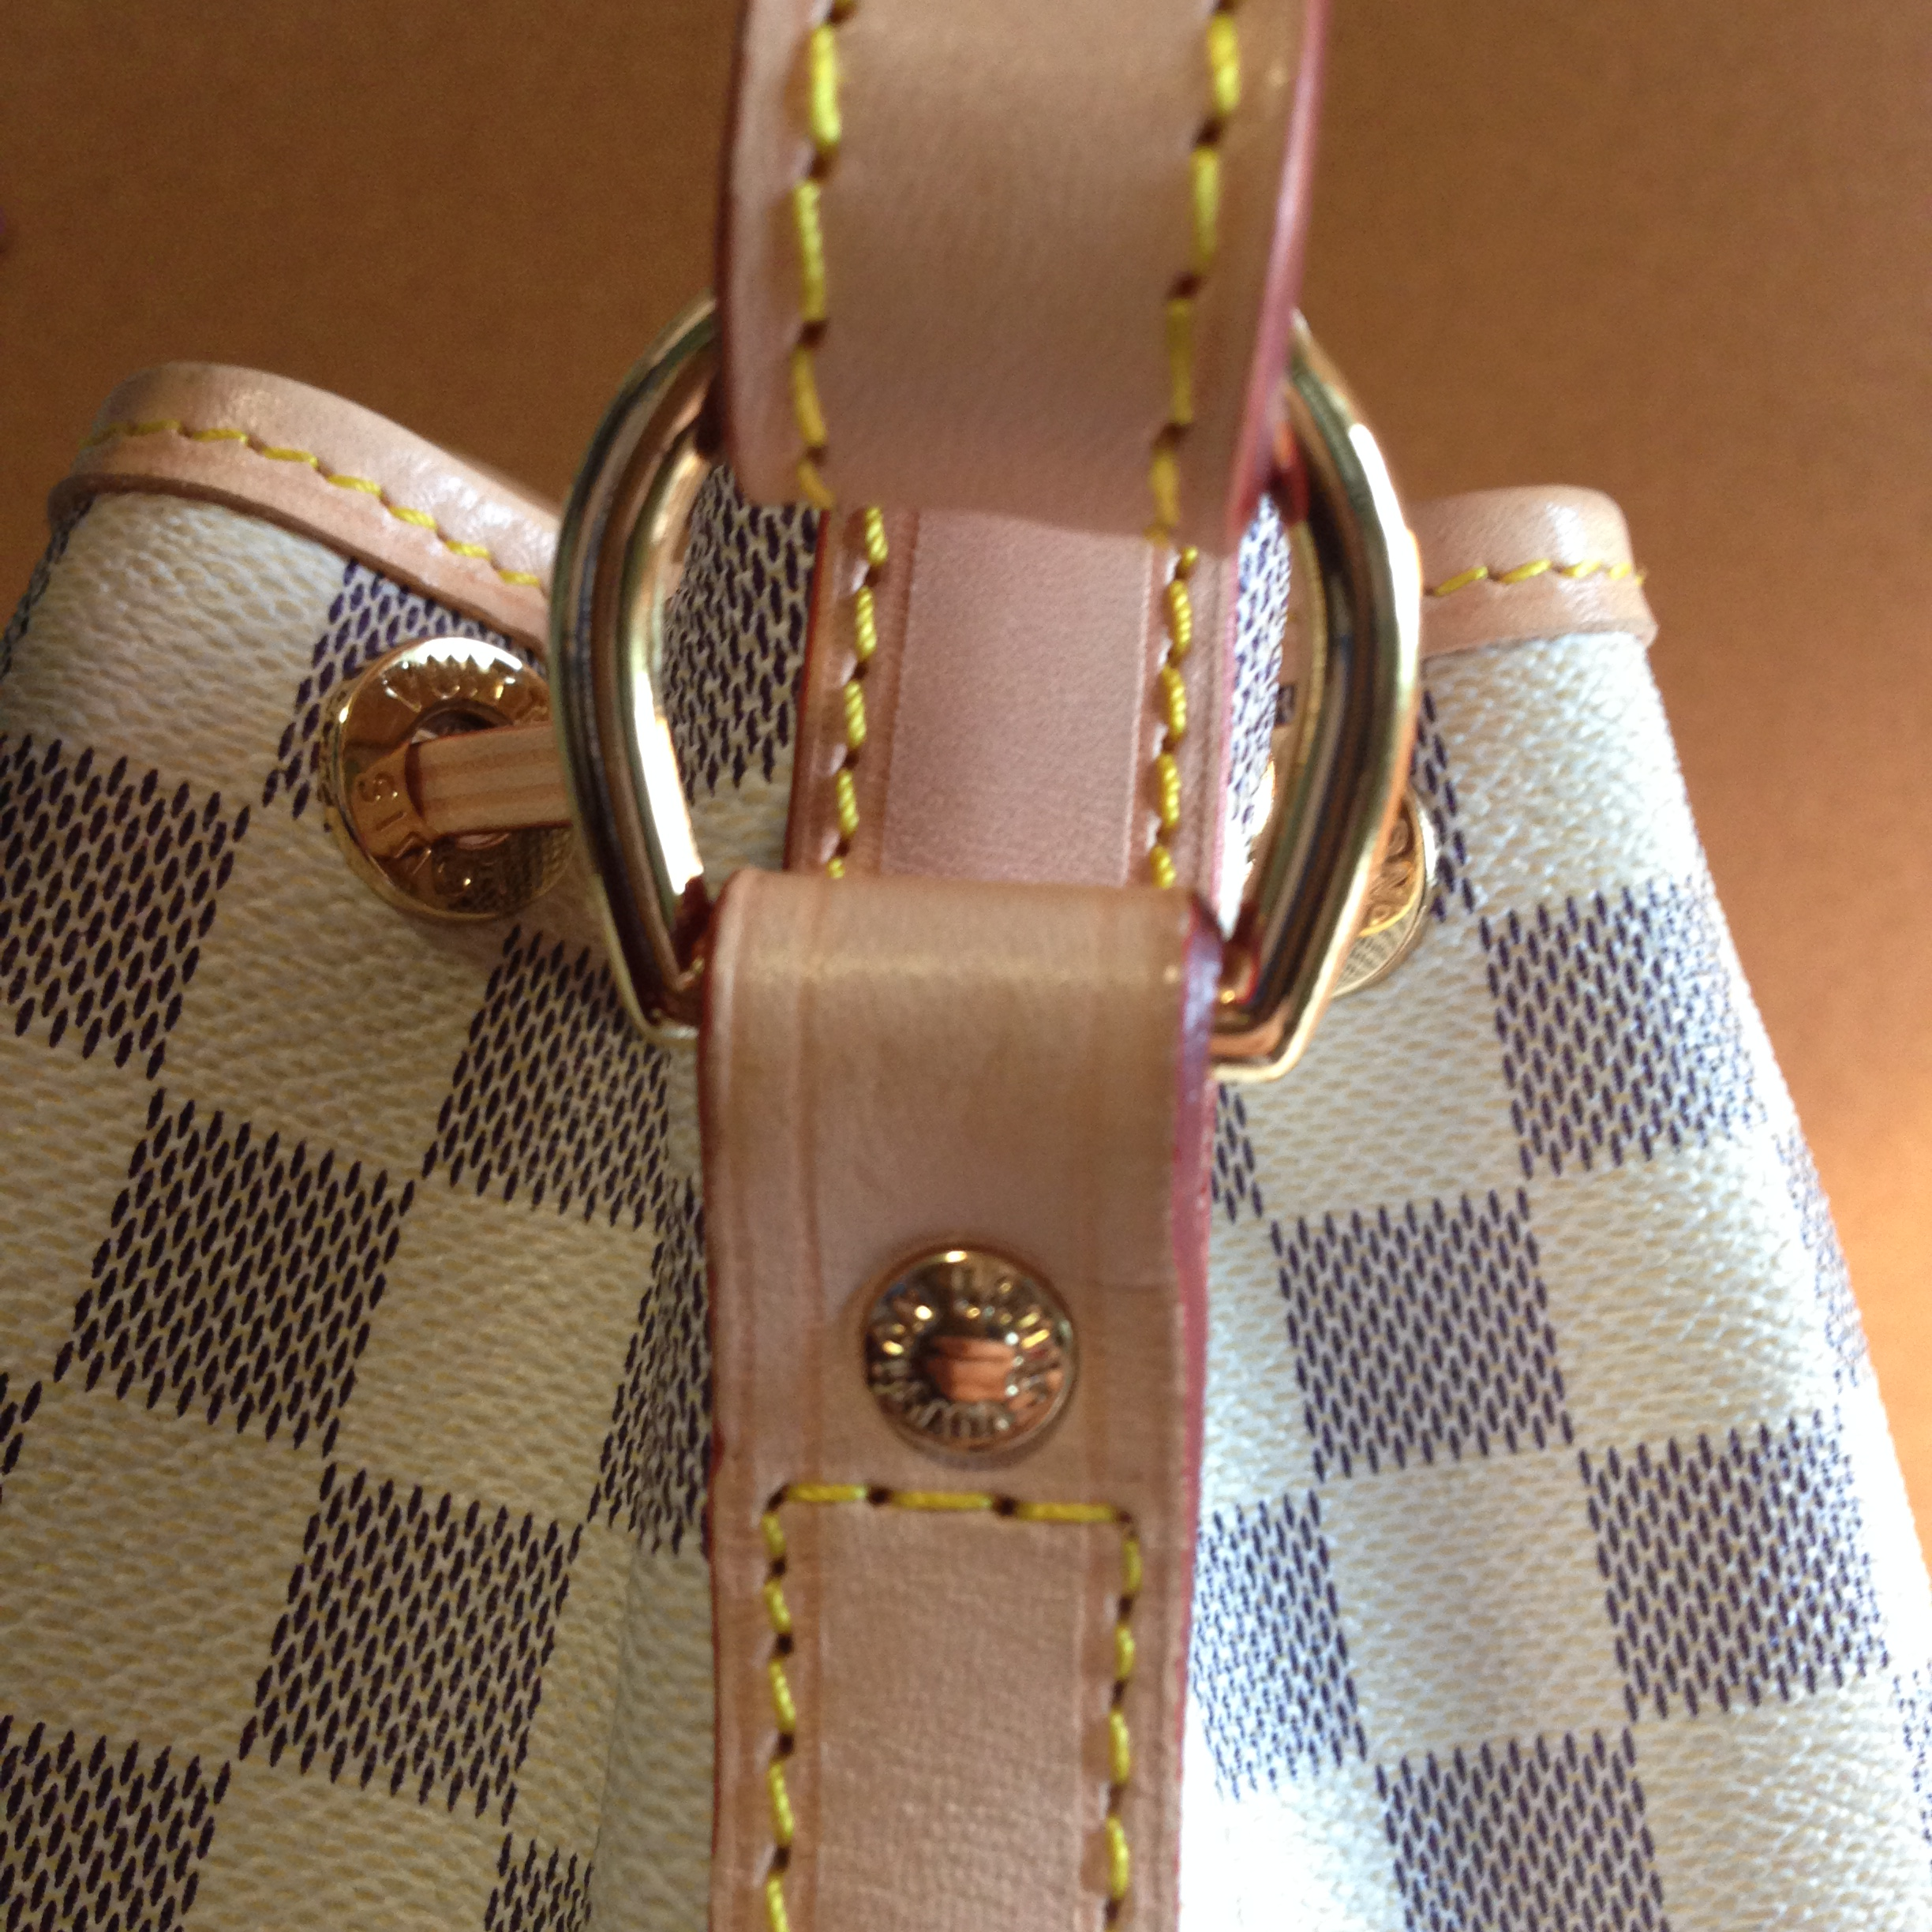 how to tell if a louis vuitton purse is real